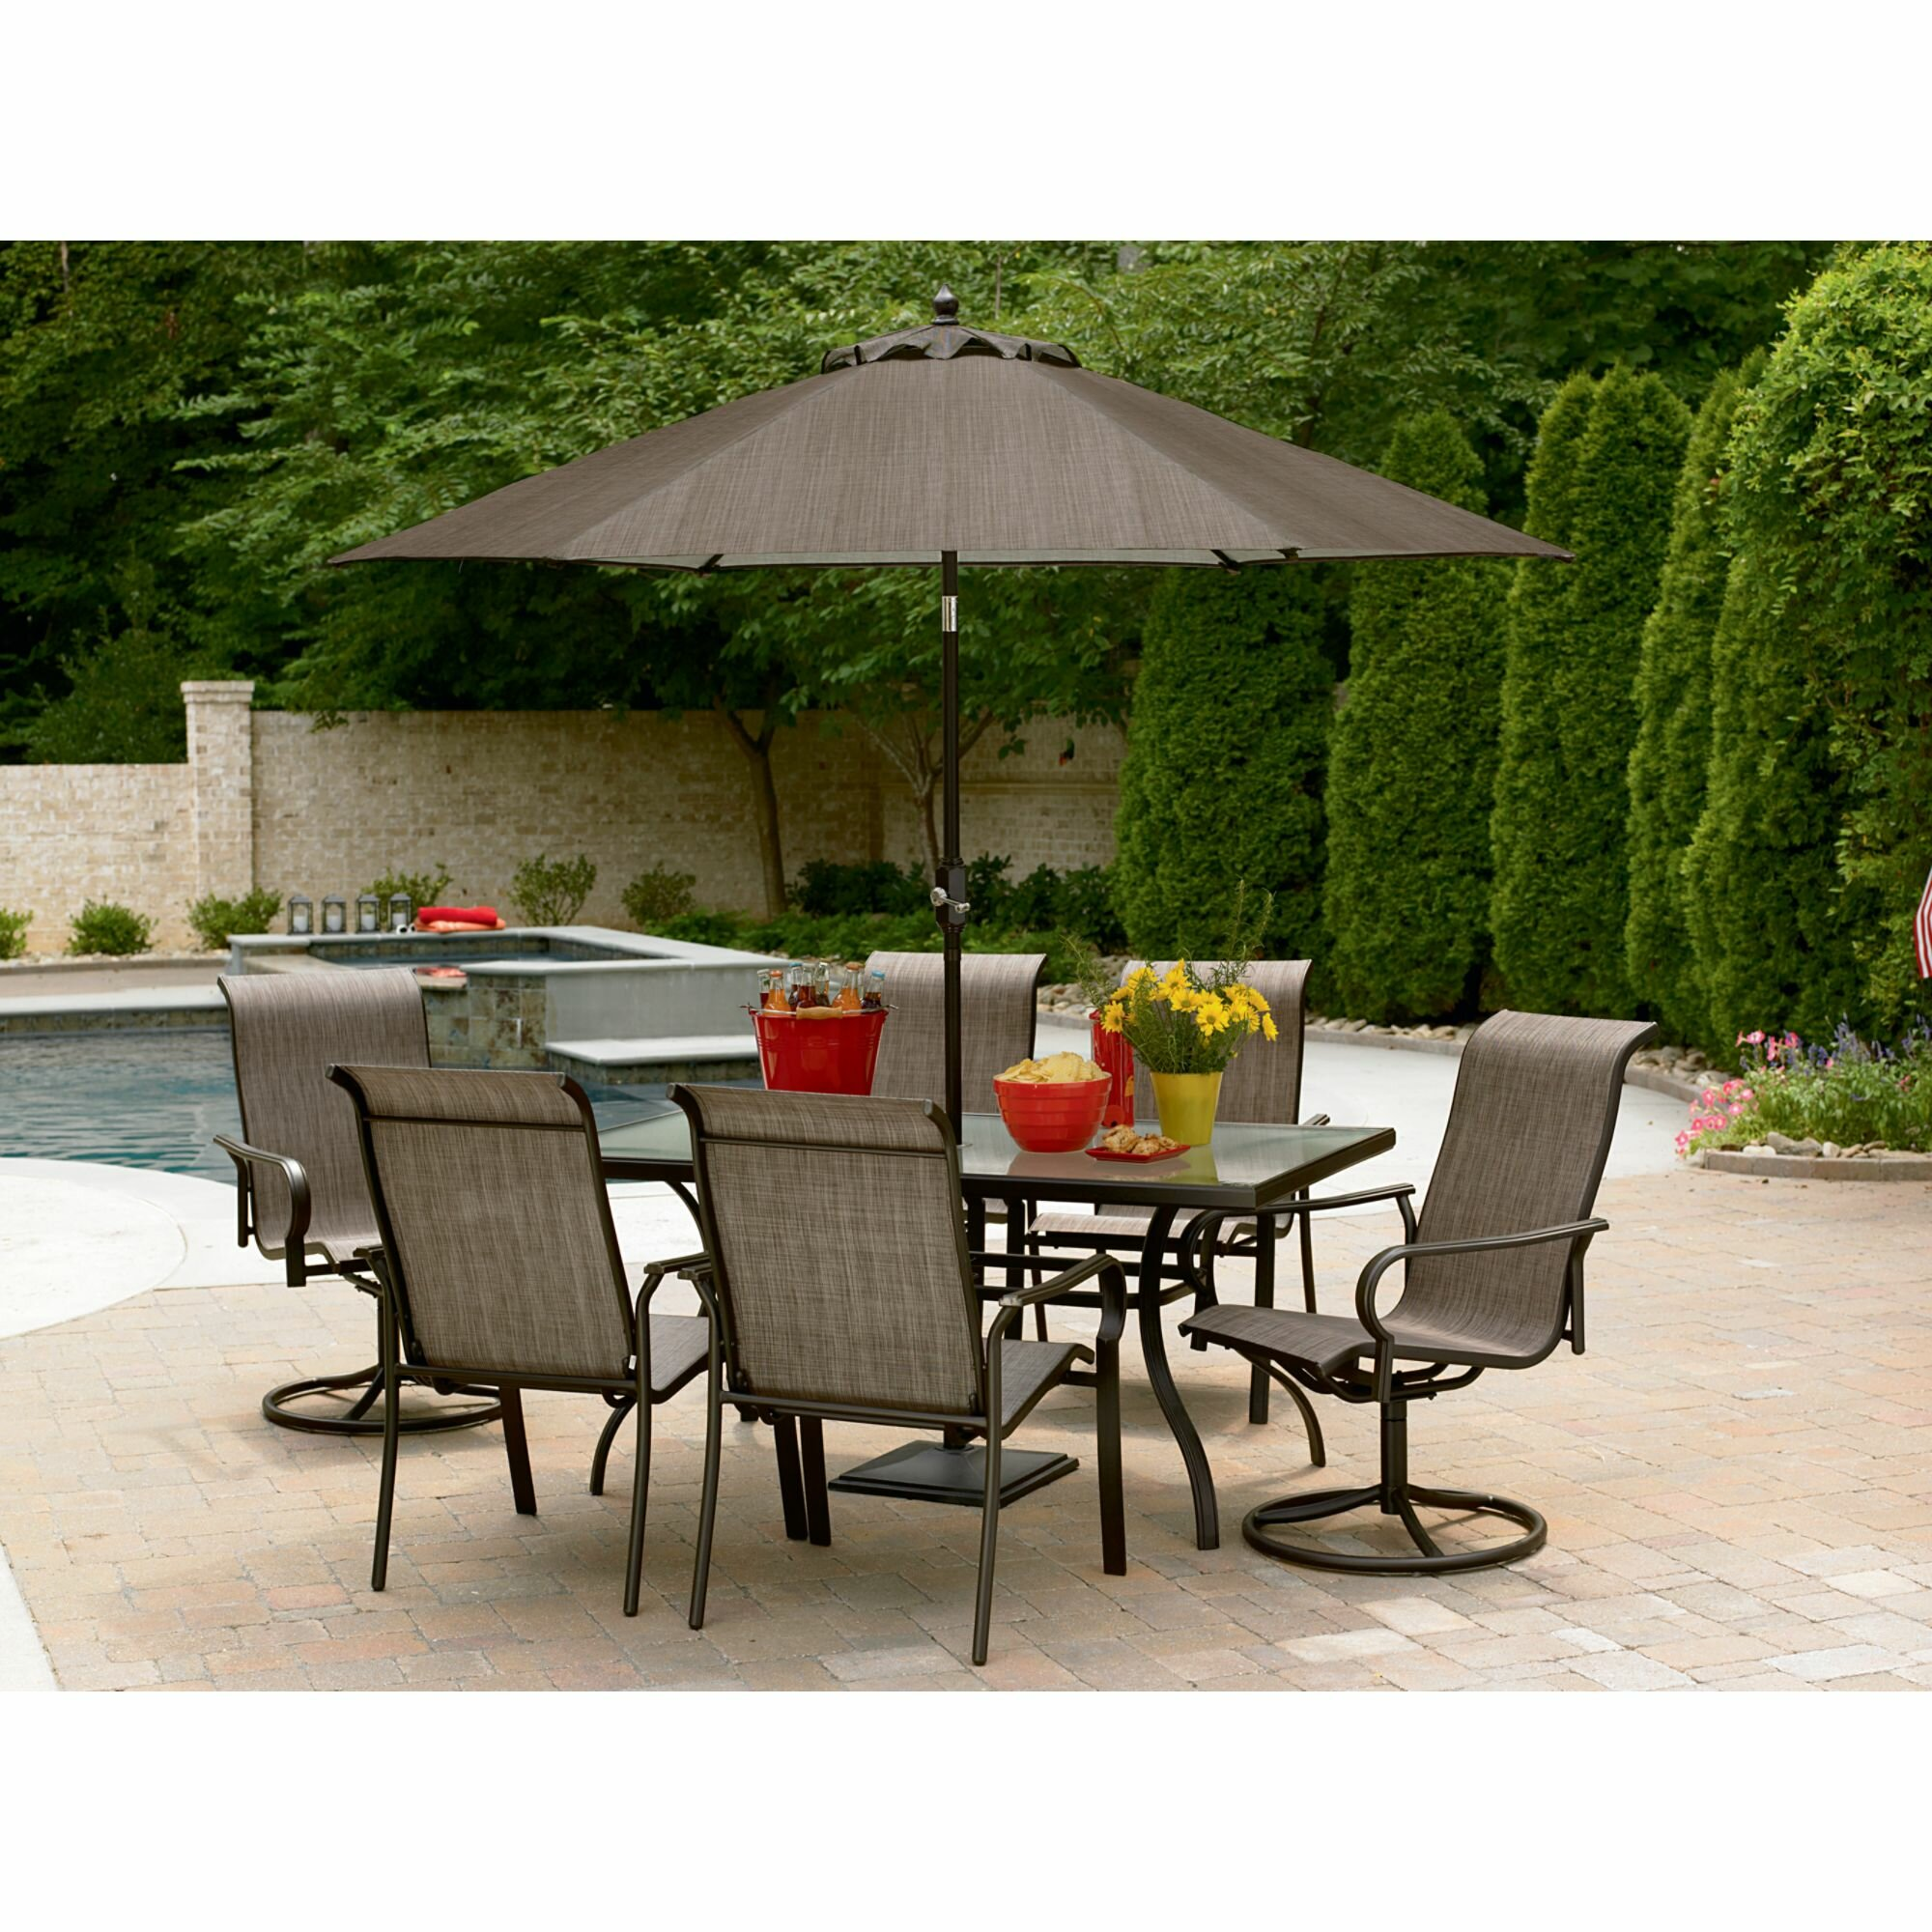 Patio Sears Outlet Patio Furniture